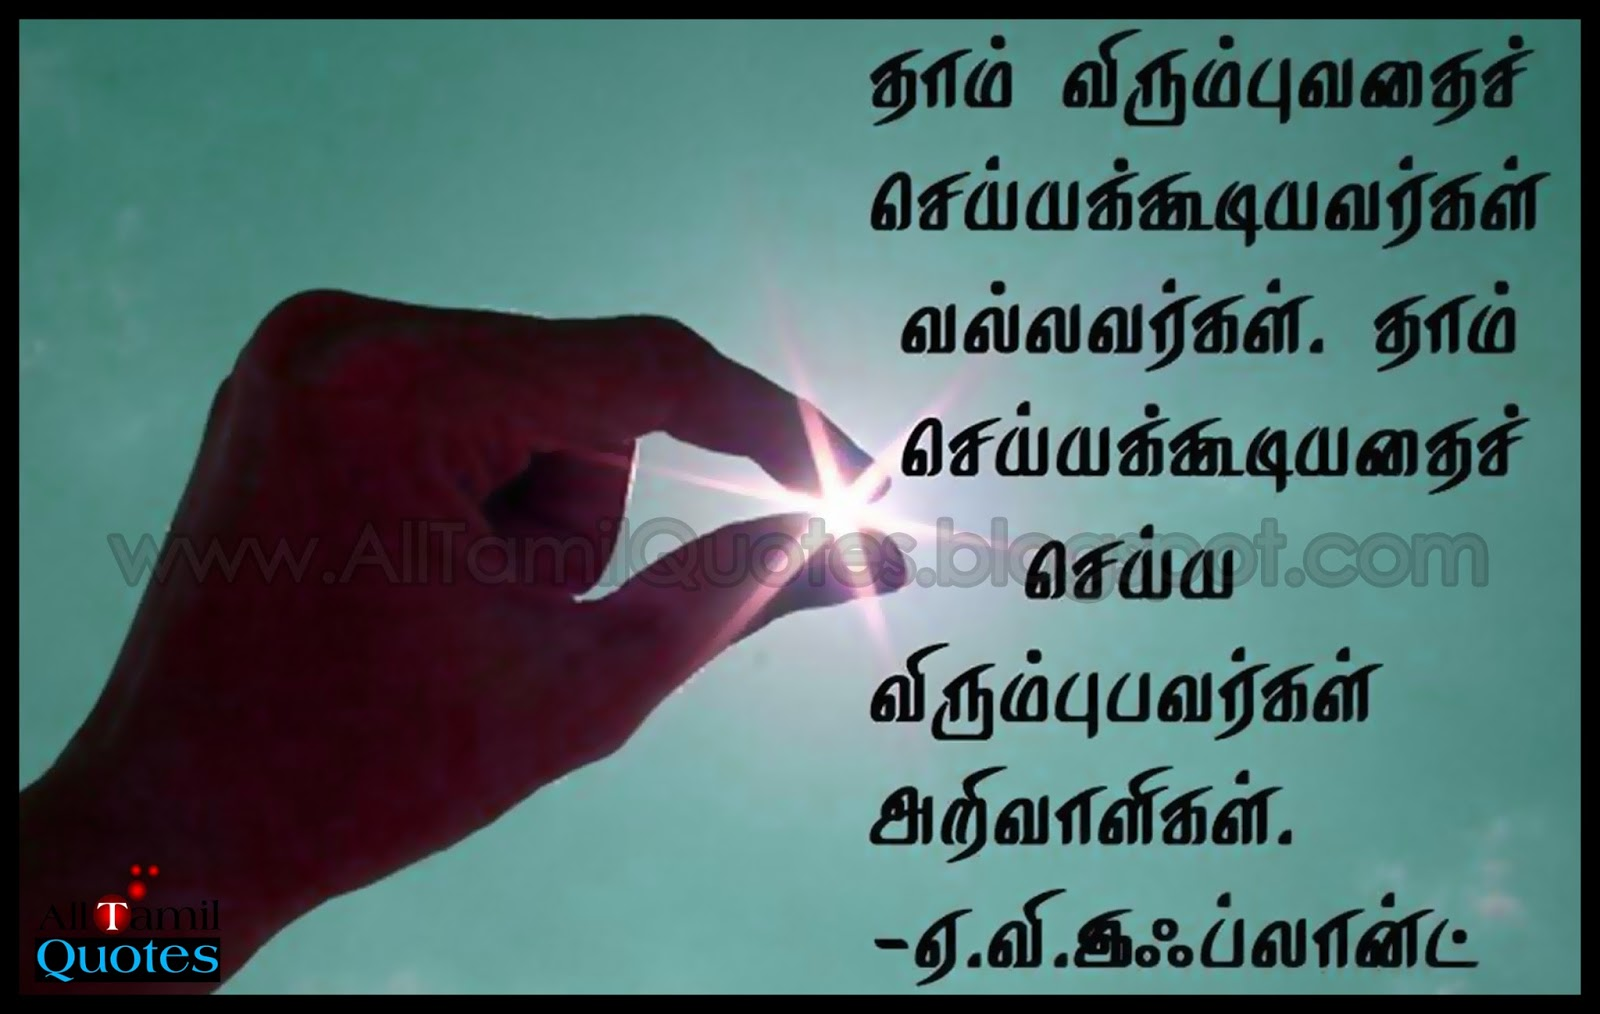 tamil facebook kavithai and images